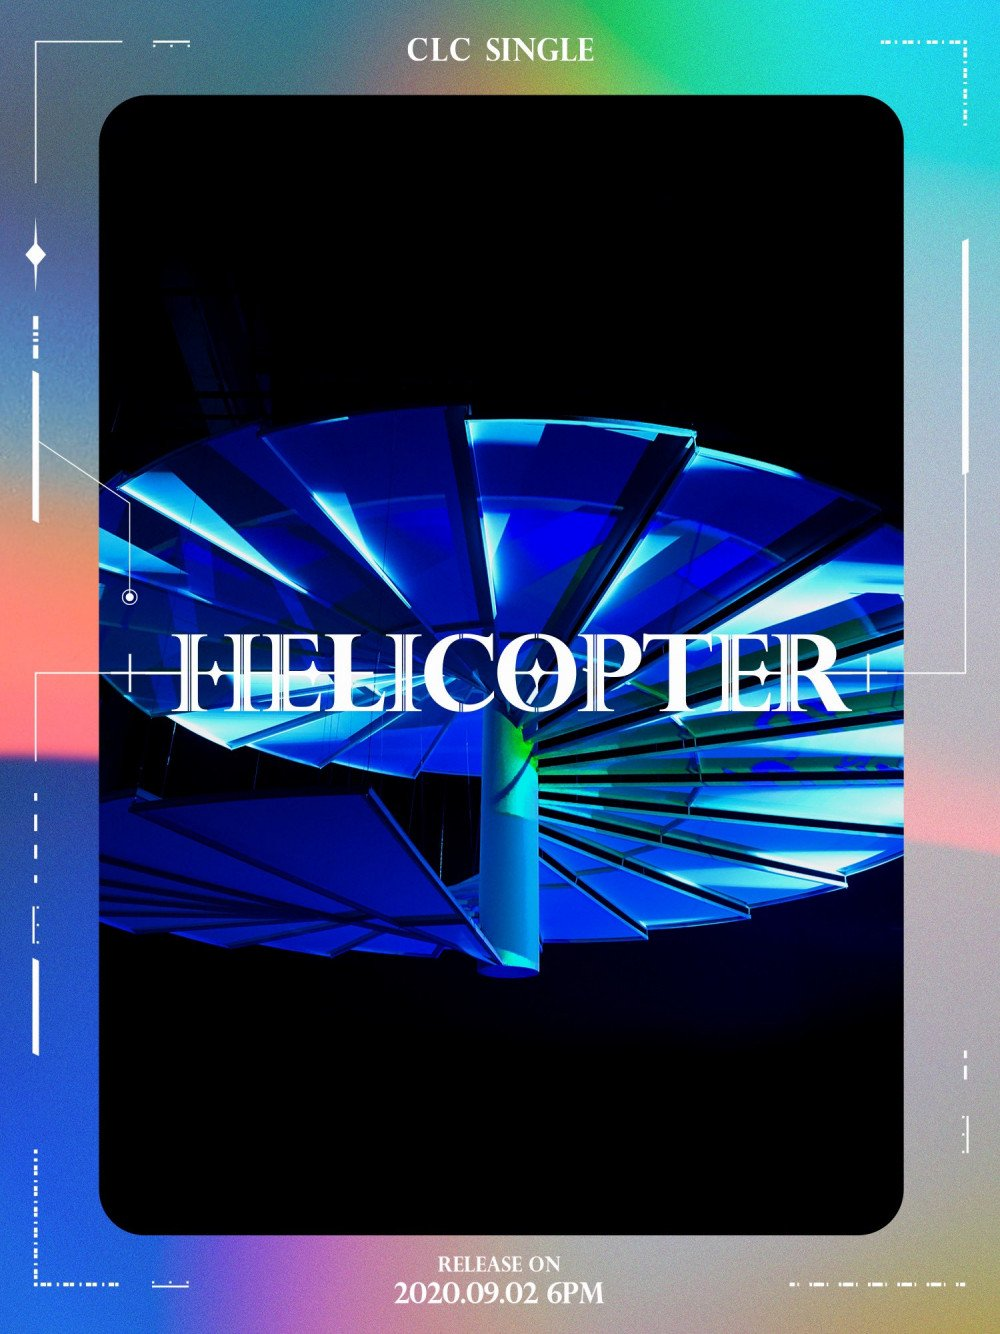 CLC Releases Futuristic Poster for New Single 'Helicopter'